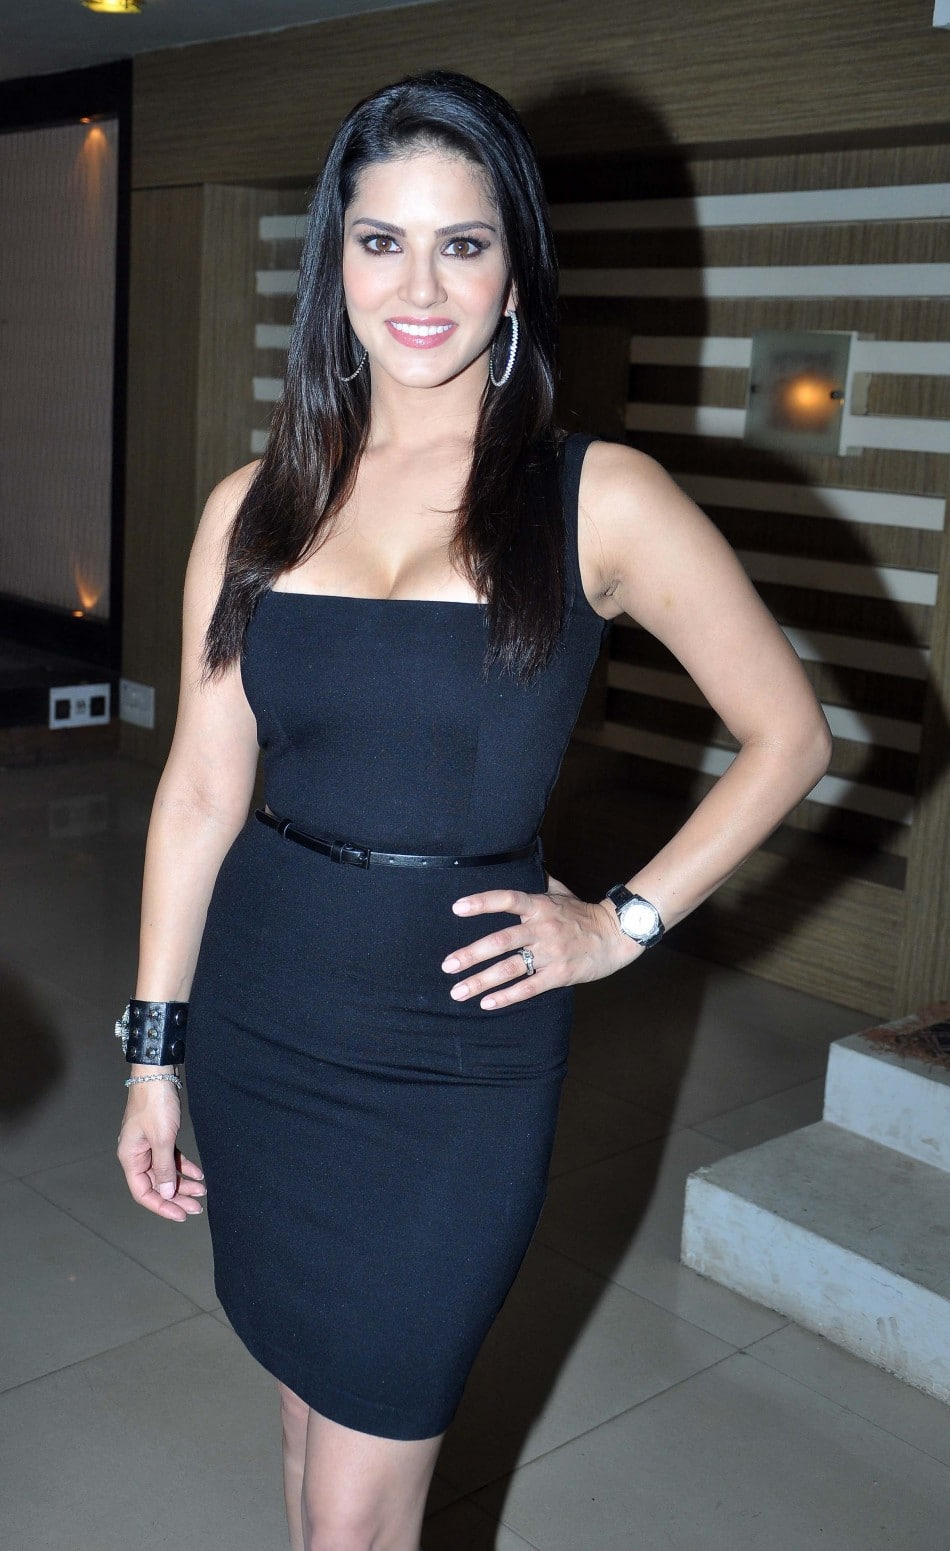 Sunny Leone: I am usually up for anything